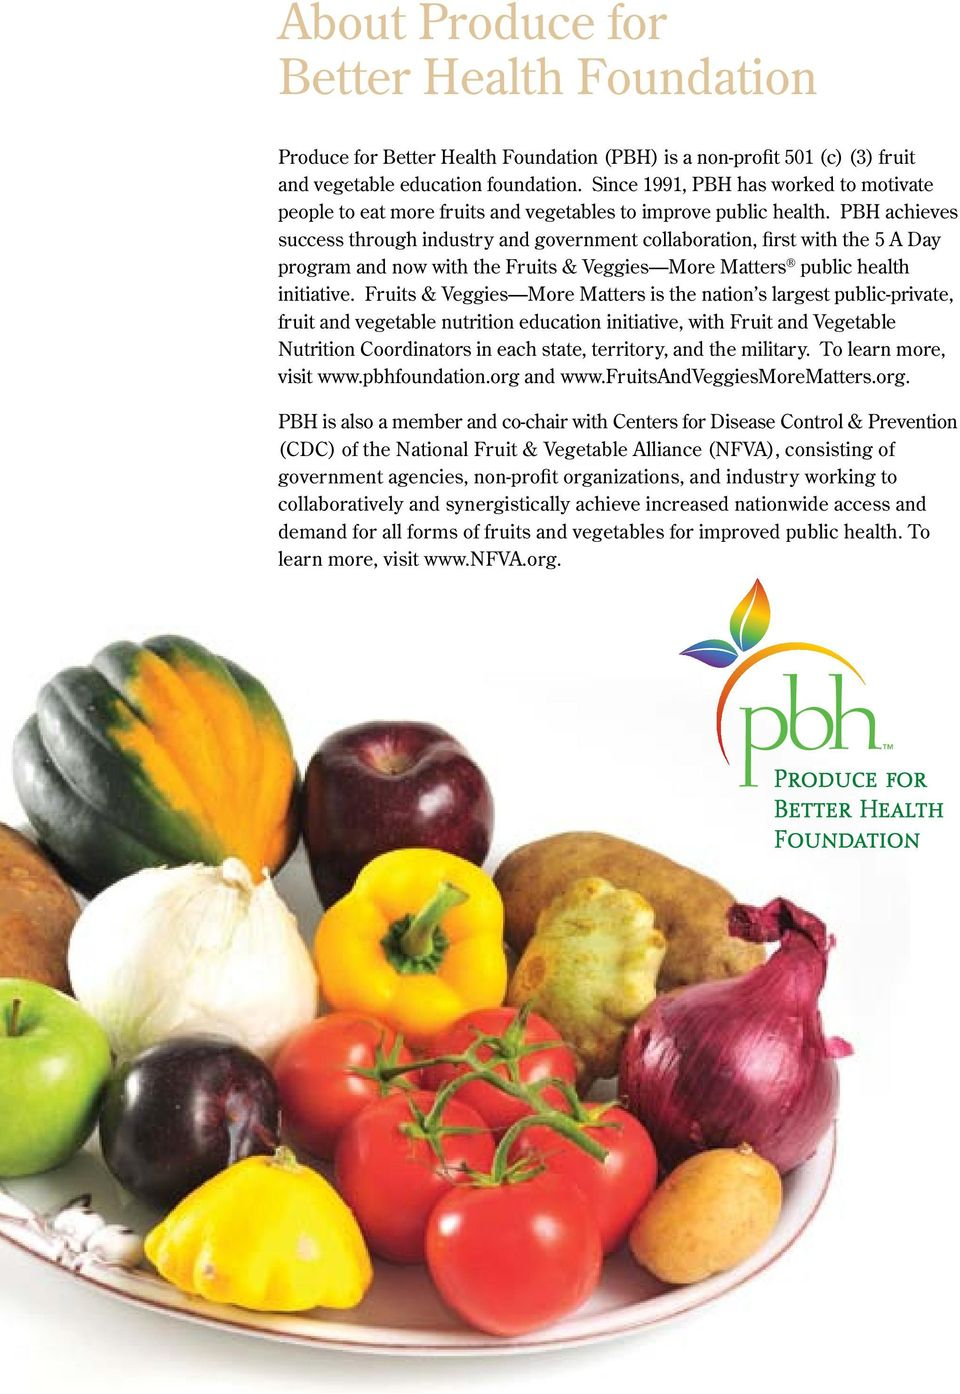 PBH achieves success through industry and government collaboration, first with the 5 A Day program and now with the Fruits & Veggies More Matters public health initiative.